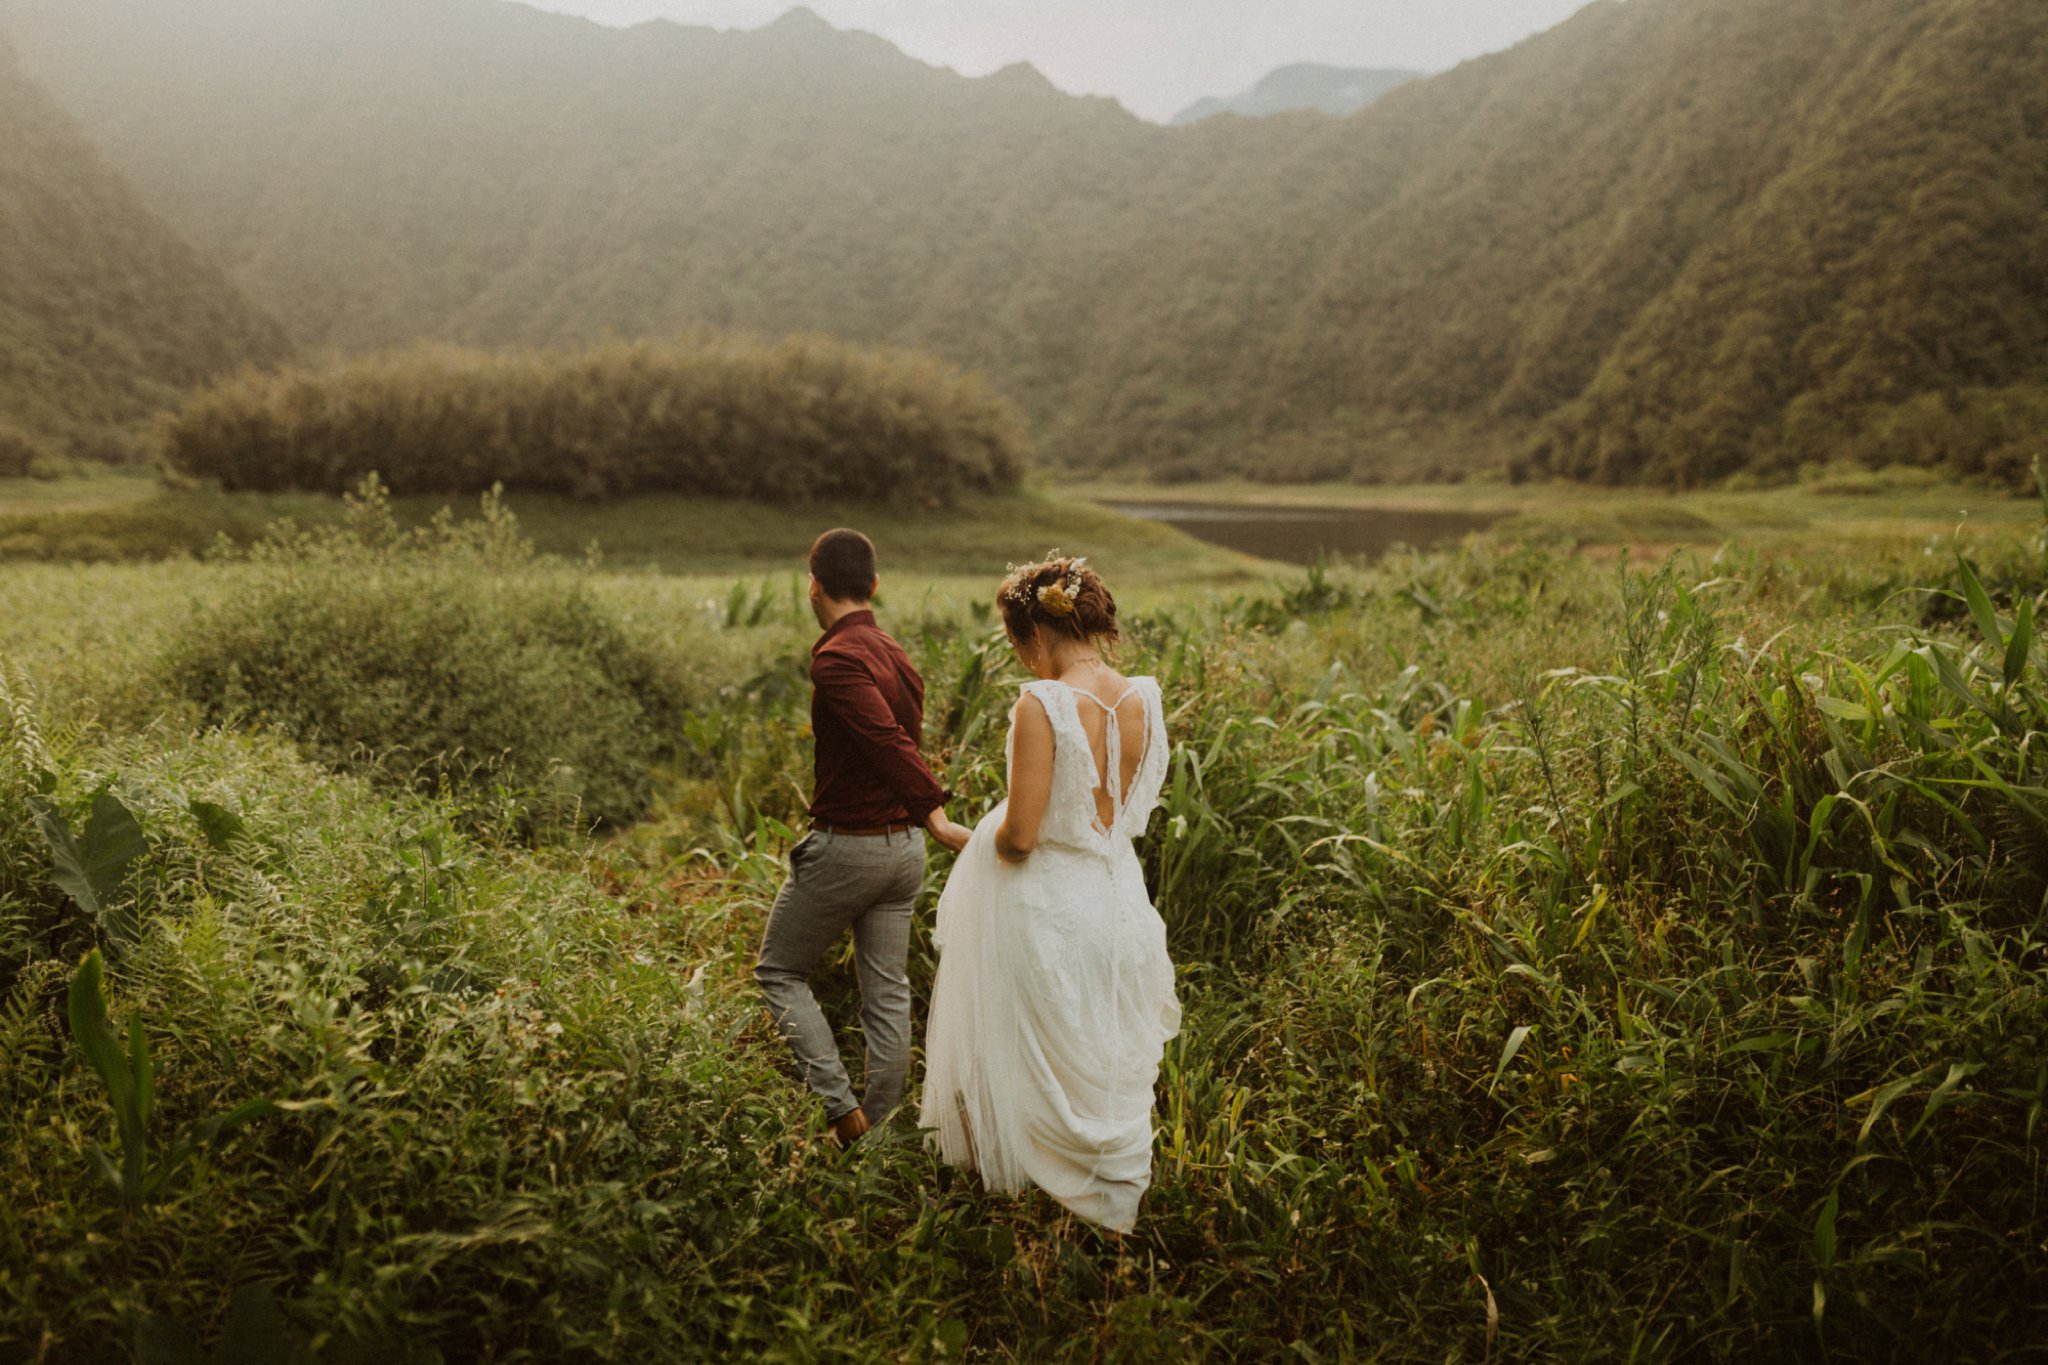 Rainy intimate ceremony in Reunion Island